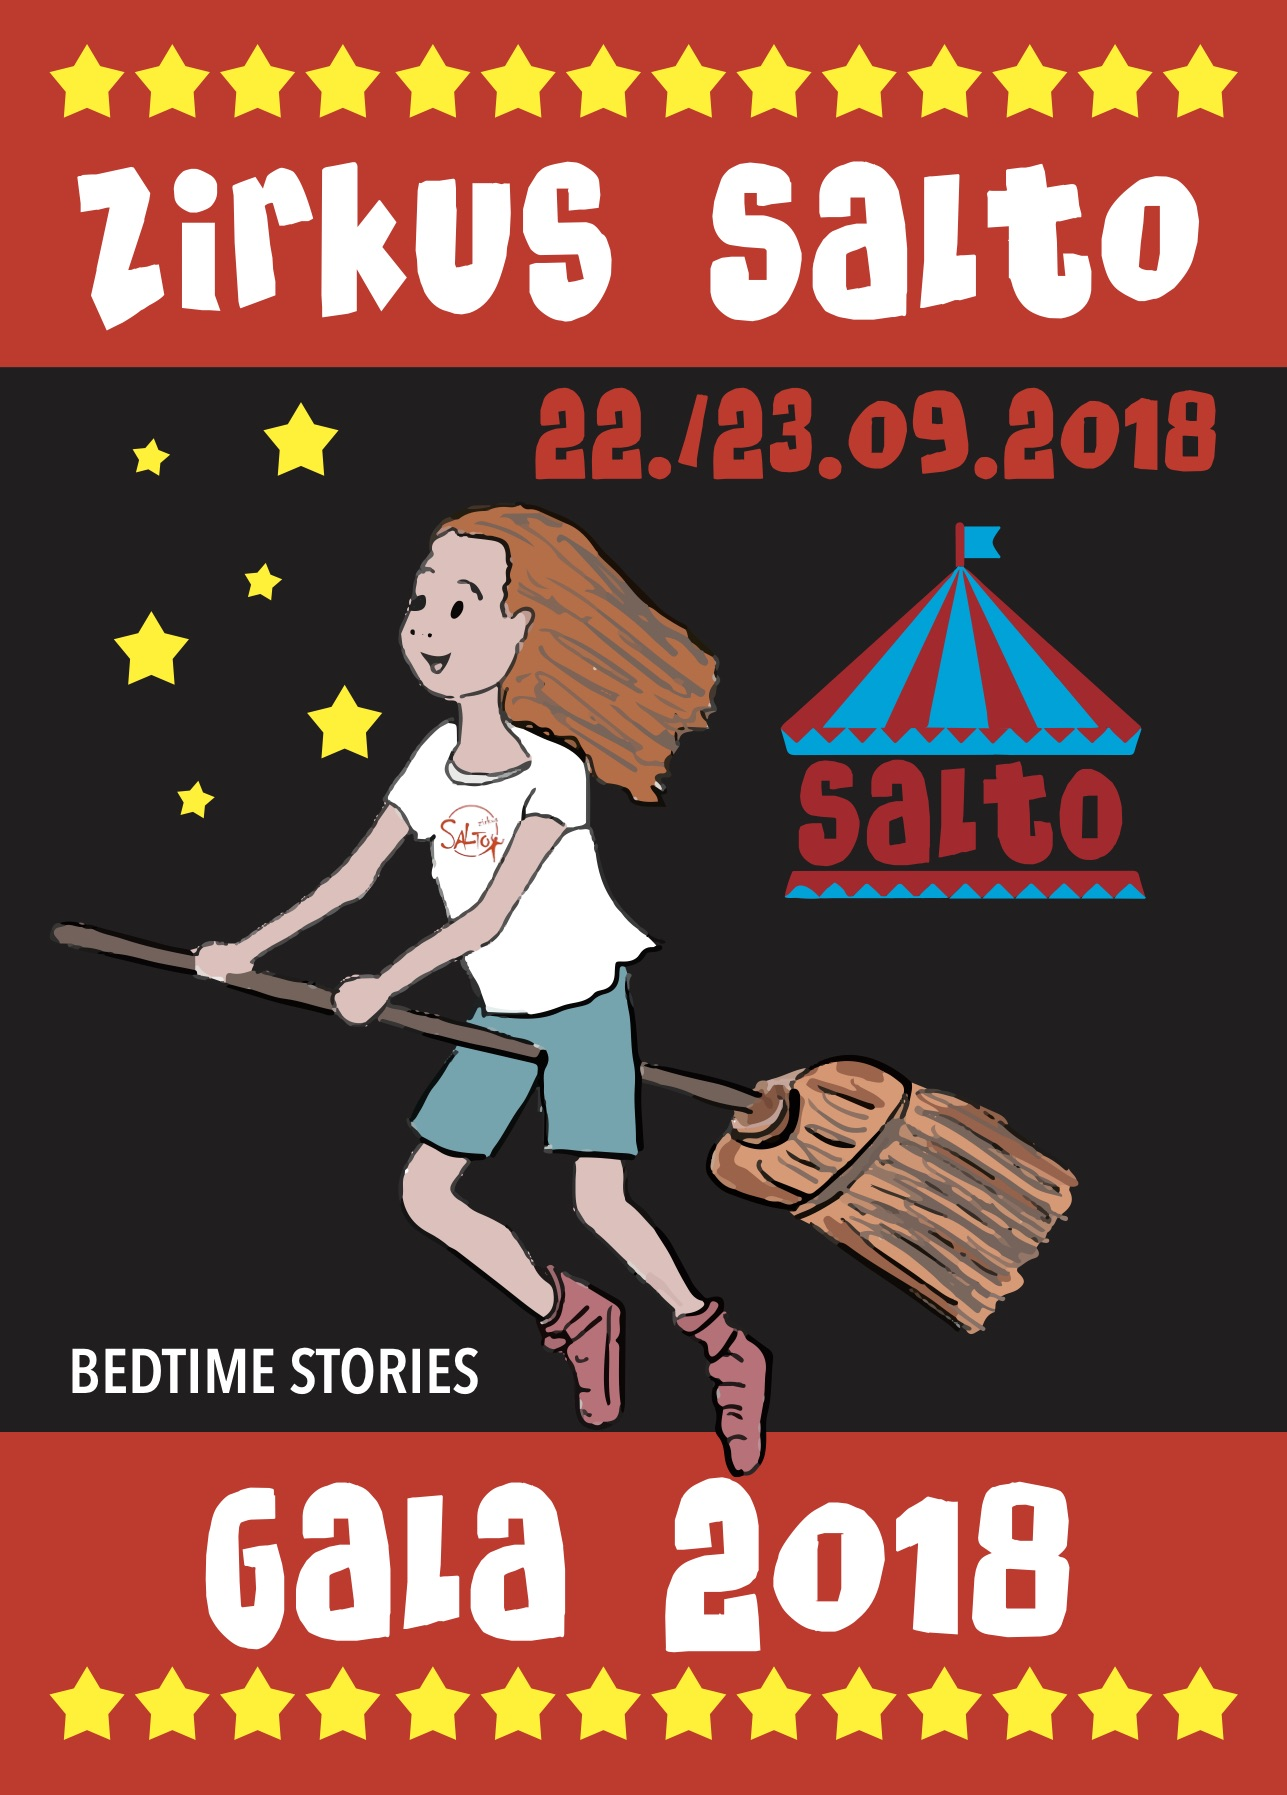 Bedtime Stories – Gala 2018